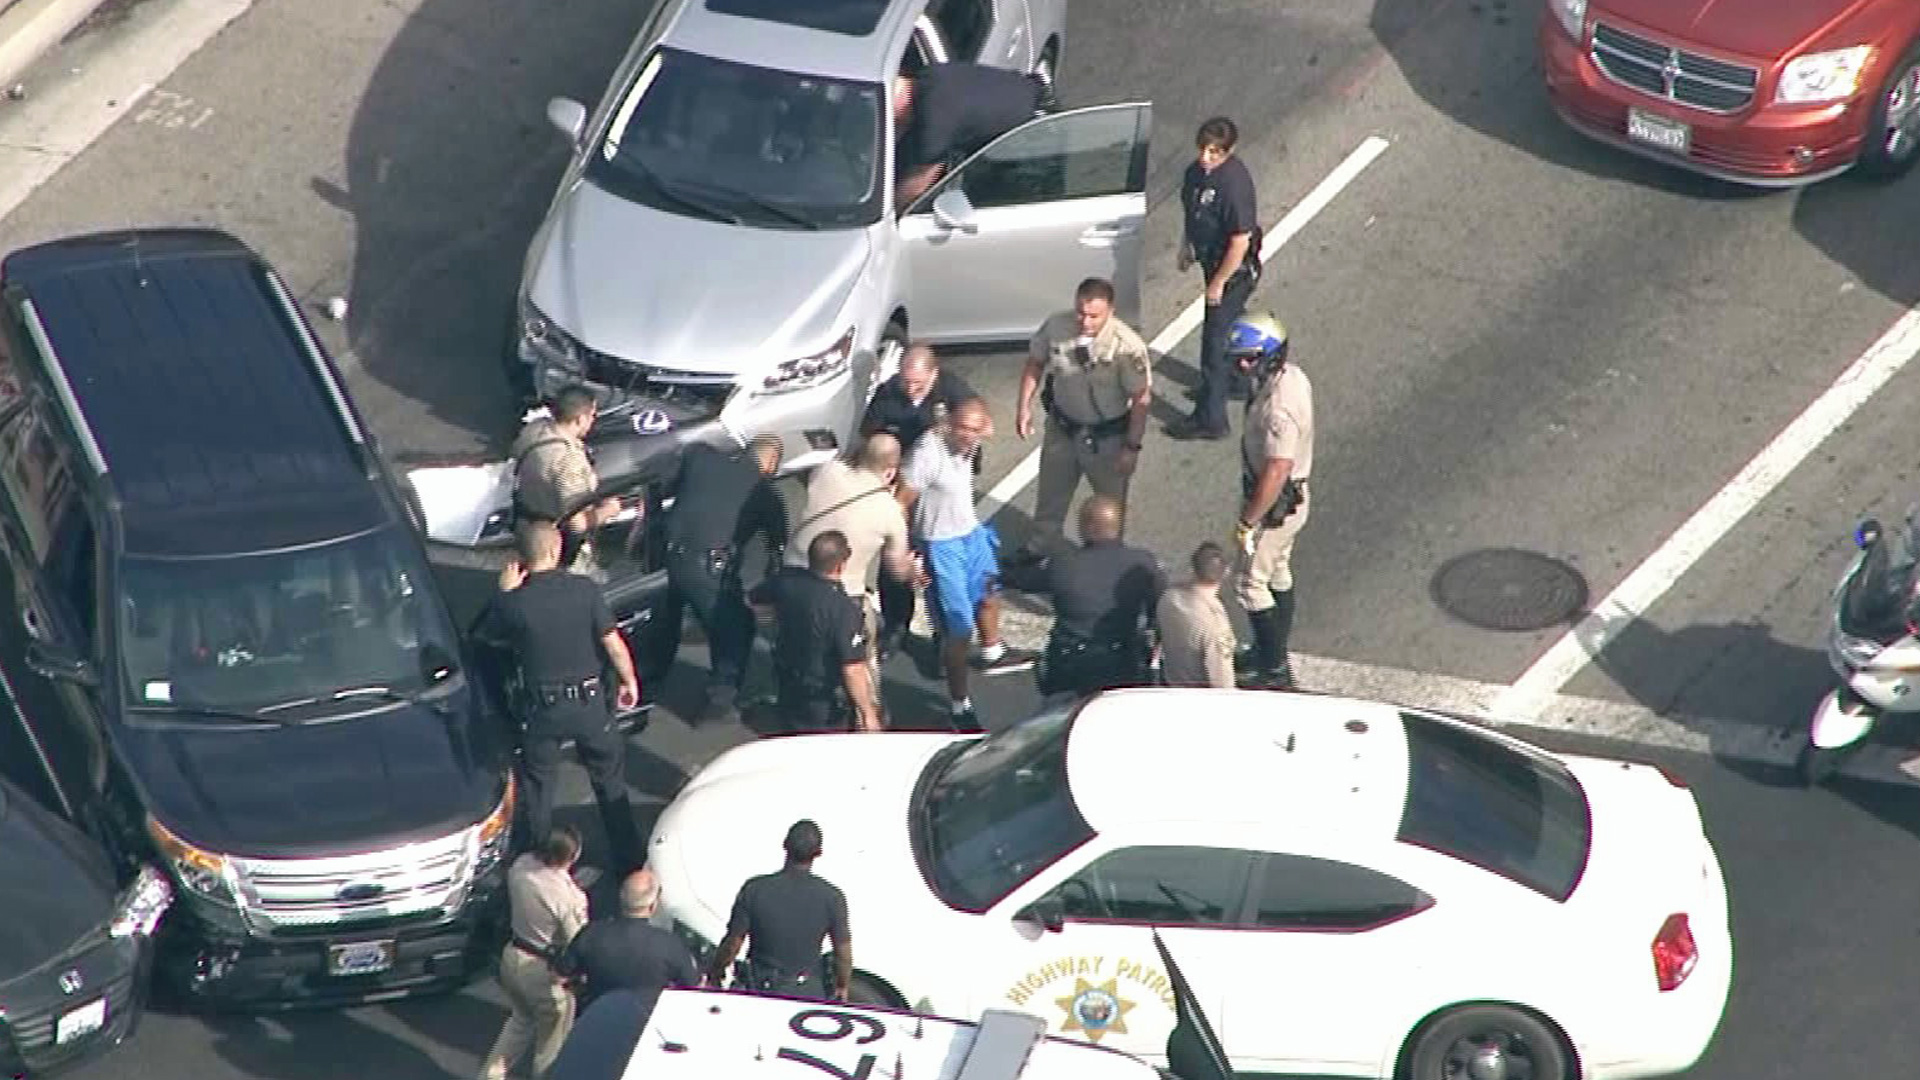 A man was taken into custody following a pursuit in the San Fernando Valley on Monday, Aug. 25, 2014. (Credit: KTLA)